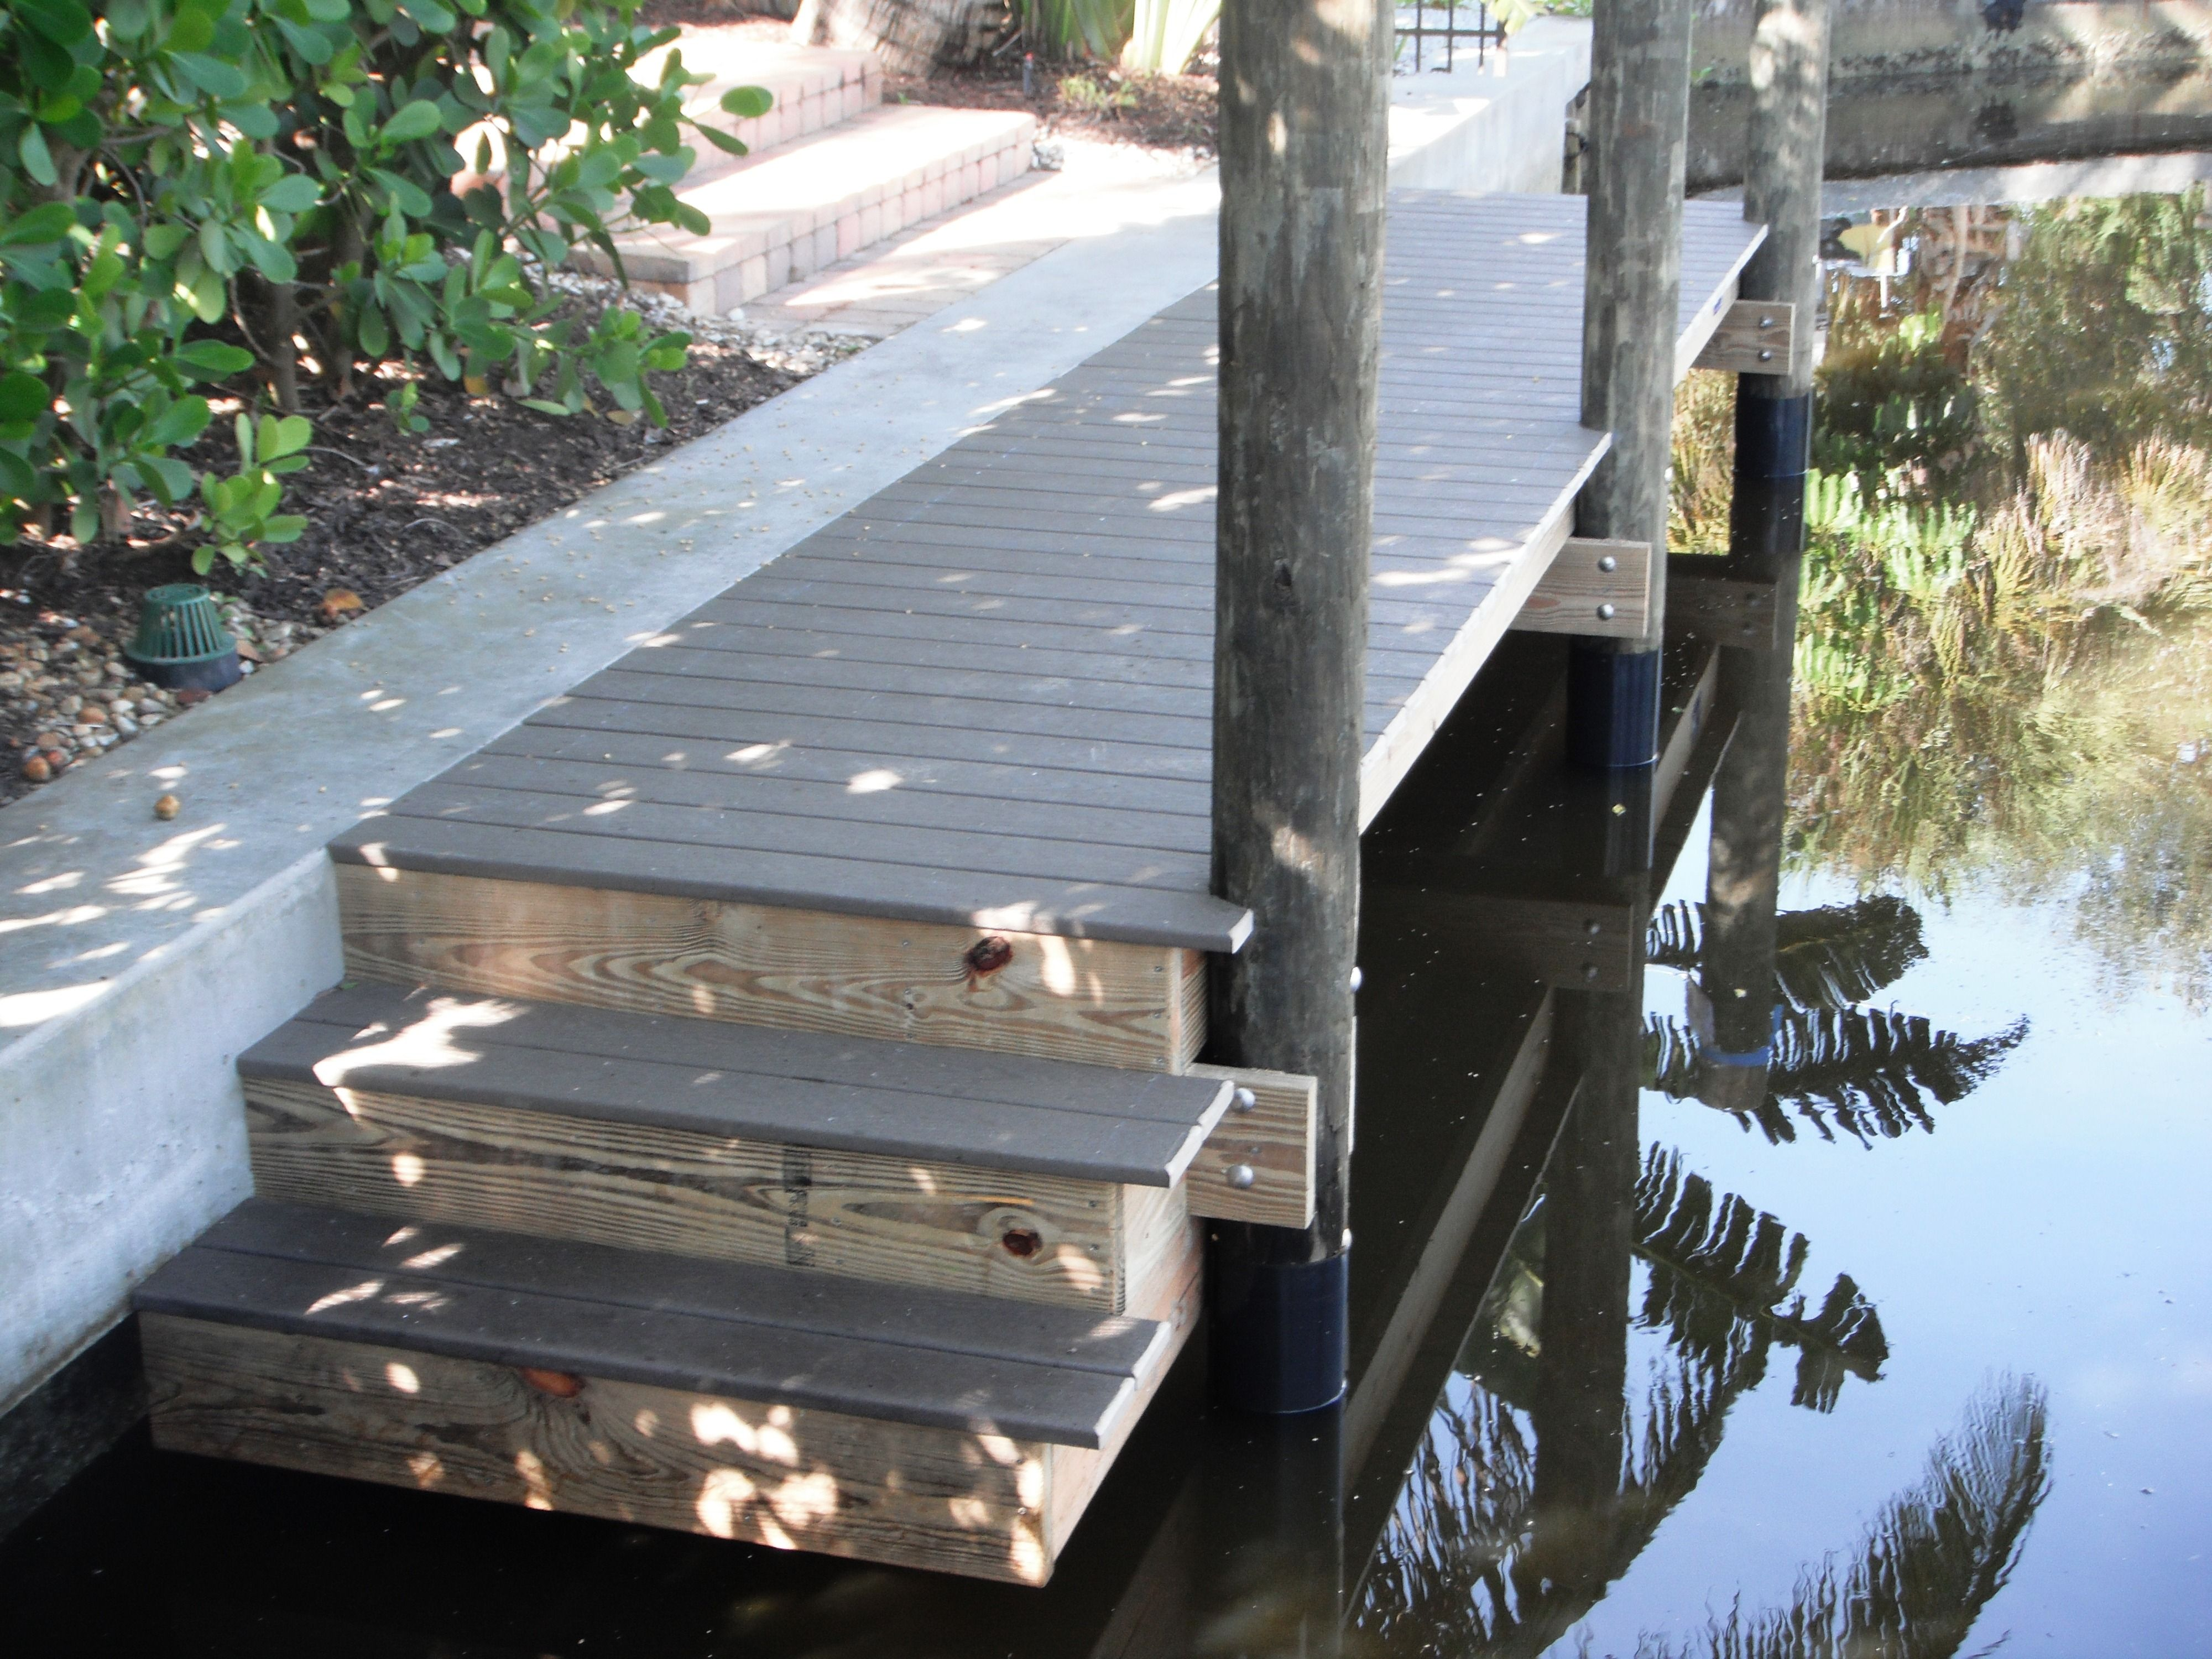 Small Boat Dock With Trex Composite Decking And Stainless Steel Hardware And Step Down Area For Kayaks Boat Dock Deck Outdoor Flooring